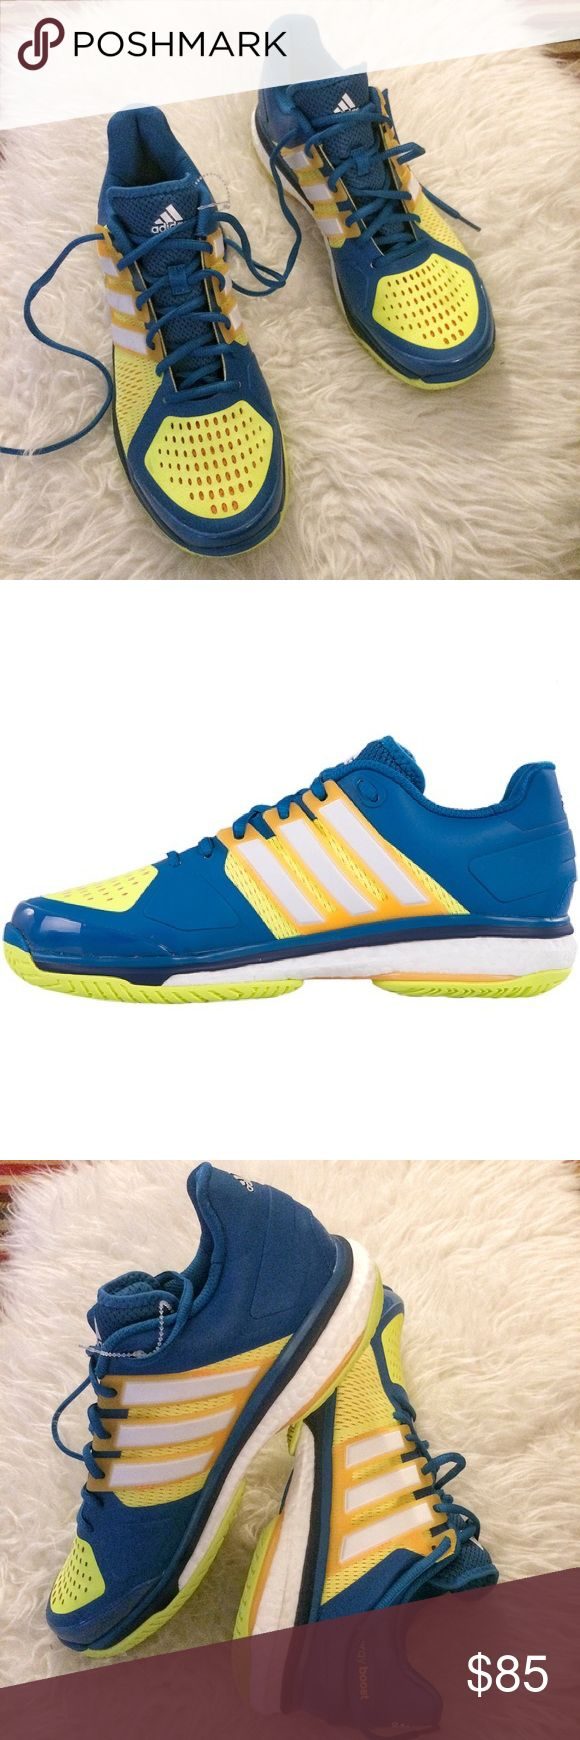 NWT Adidas Energy Boost Men's Tennis Shoe NWOT Adidas Energy Boost Men's Tennis Shoe - Color: Blue / Yellow Size: 10.5.  Code:00a67-17a00 adidas Shoes Athletic Shoes